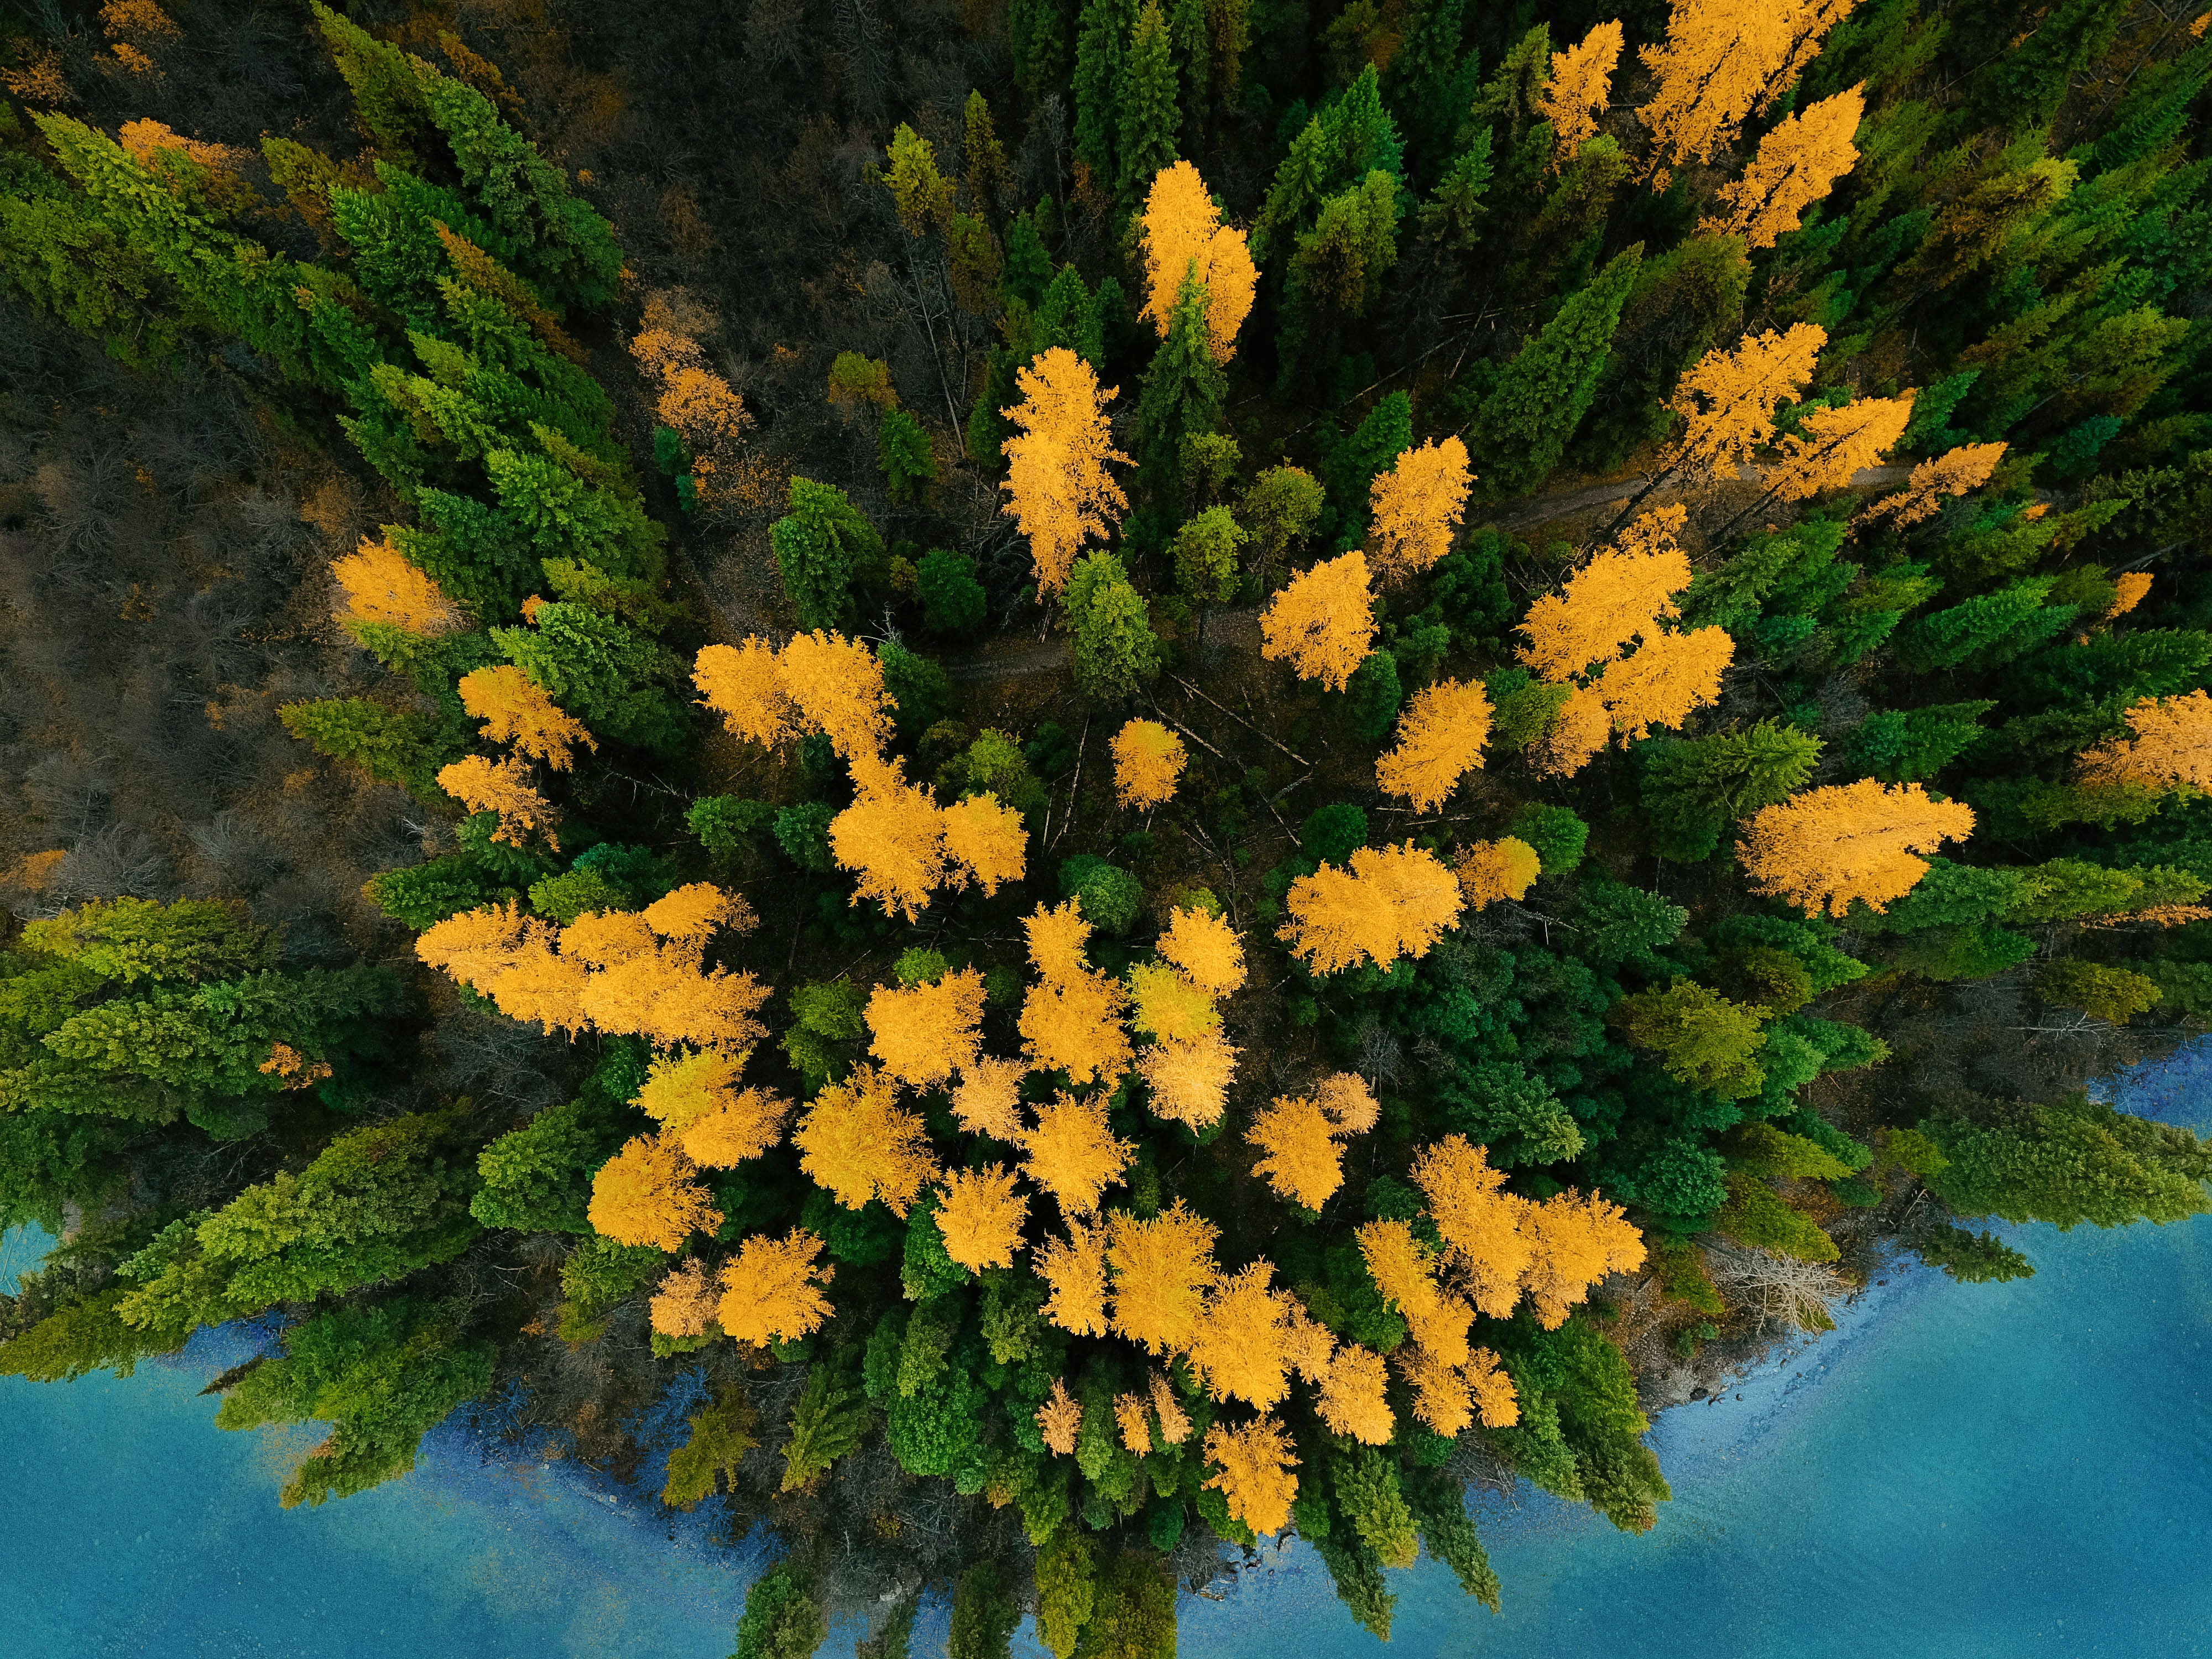 bird's-eye view of green and yellow leafed trees